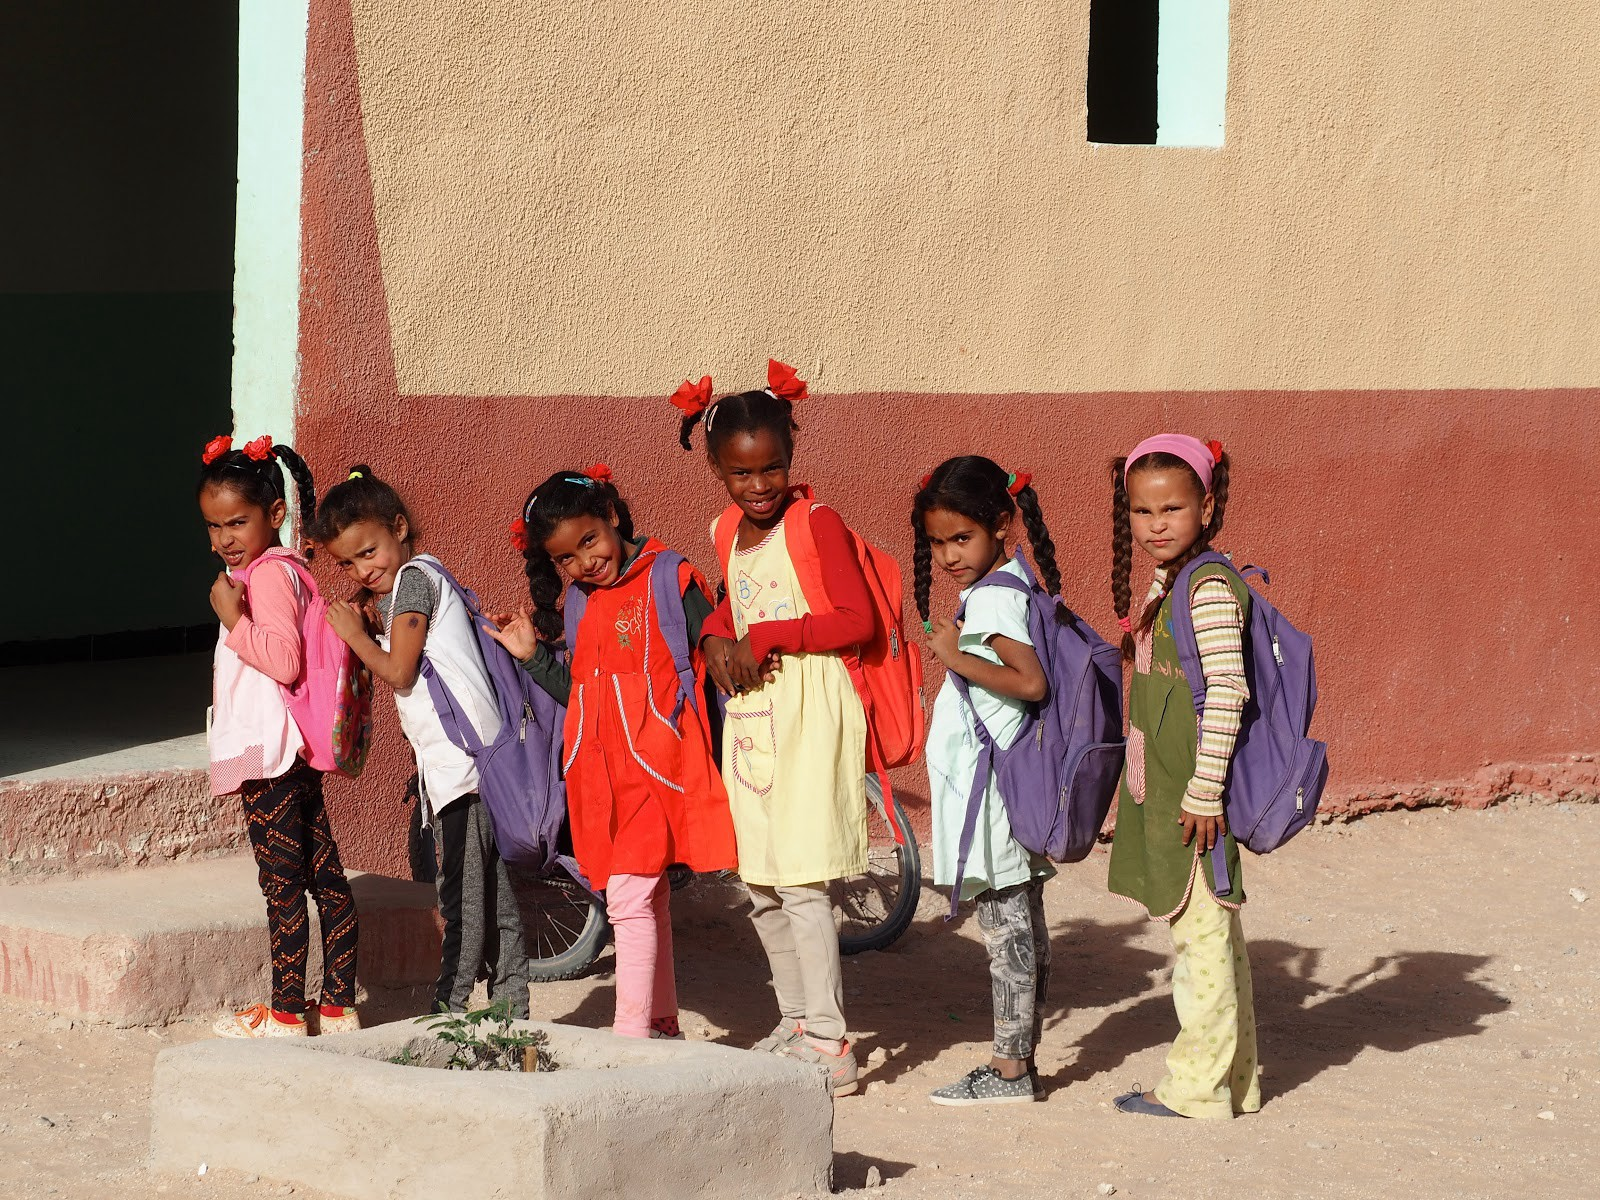 A group of school girls lines up to enter their classroom in Tindouf, Algeria. Classes are mixed with boys and girls, but they form separate lines to enter. The literacy rate in the Tindouf camps is reportedly over 90%, with girls' and boys' rates about the same. In FY 2018, PRM provided $6.9 million to UNHCR to support its work in Algeria. Photographer: Deputy Director for the PRM Africa Assistance Office Wendy Henning.